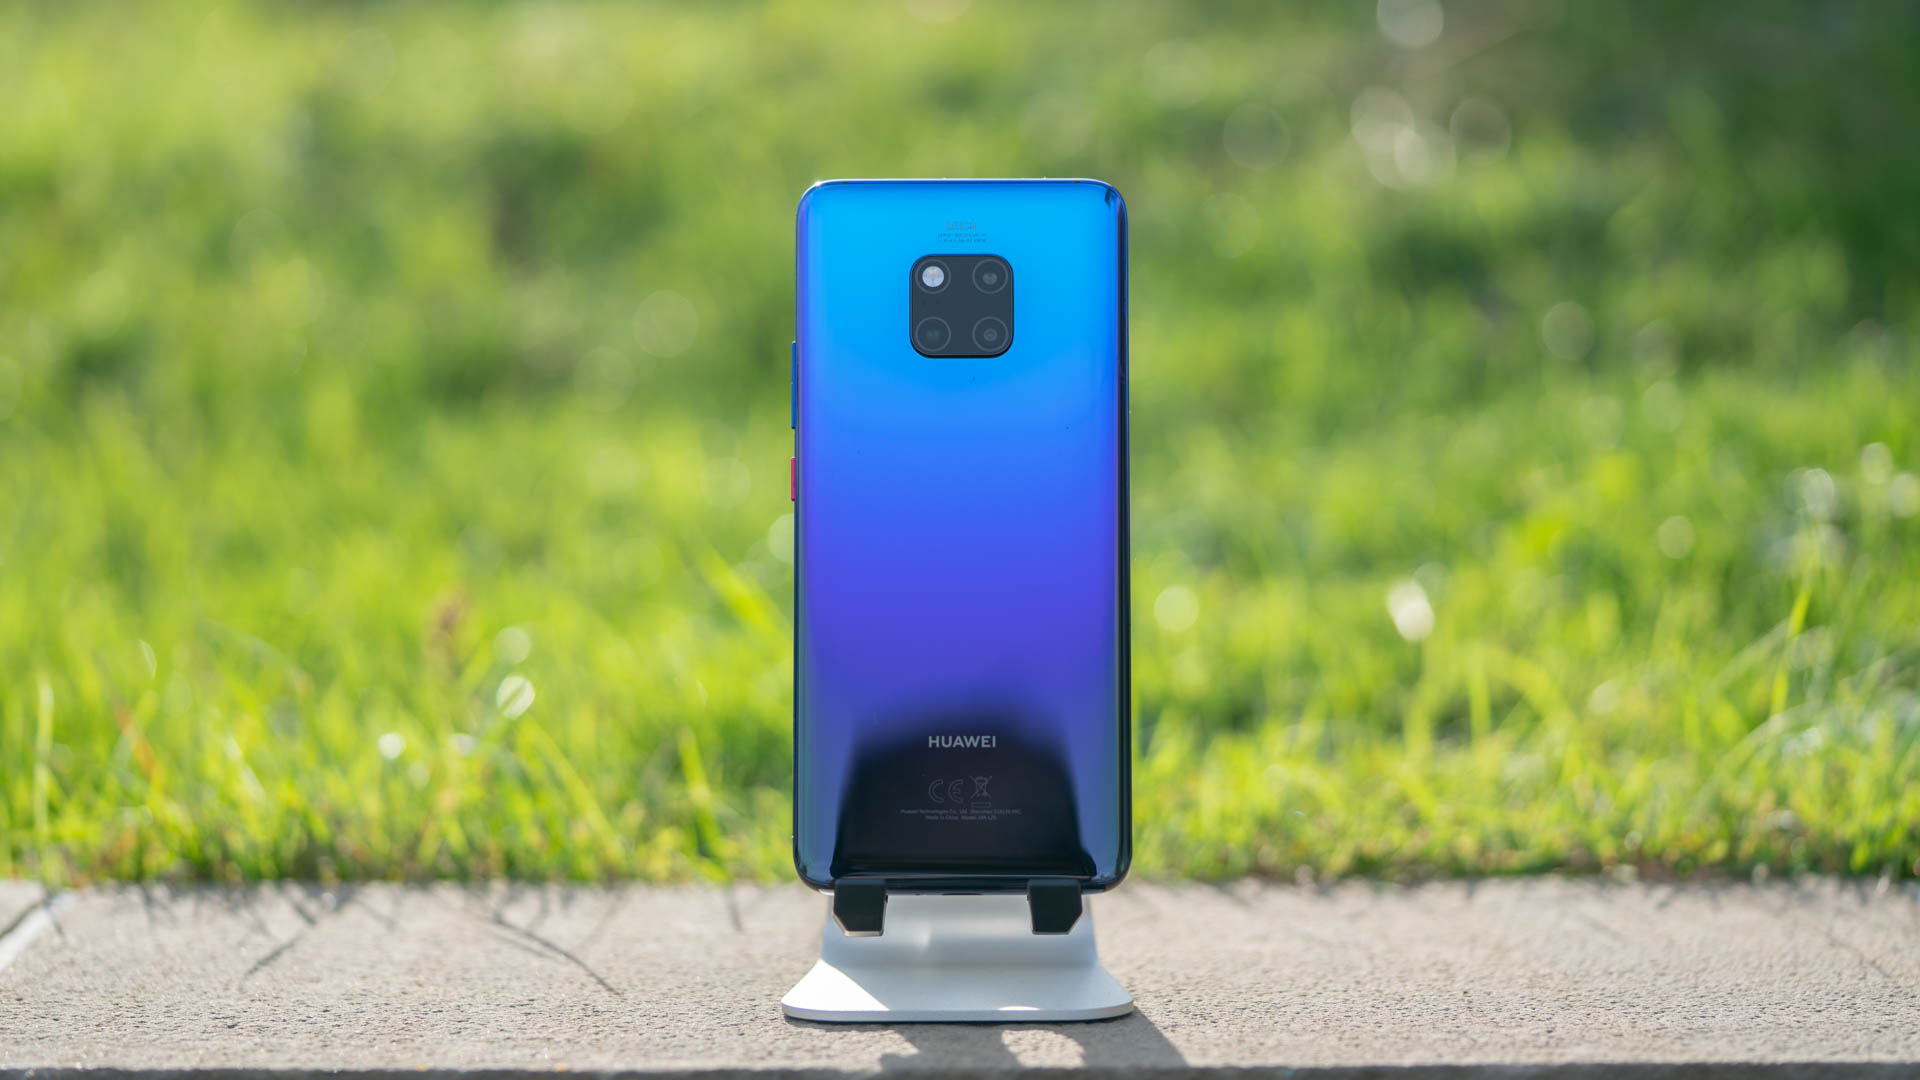 das huawei mate 20 pro im test das smartphone 2018 techtest. Black Bedroom Furniture Sets. Home Design Ideas